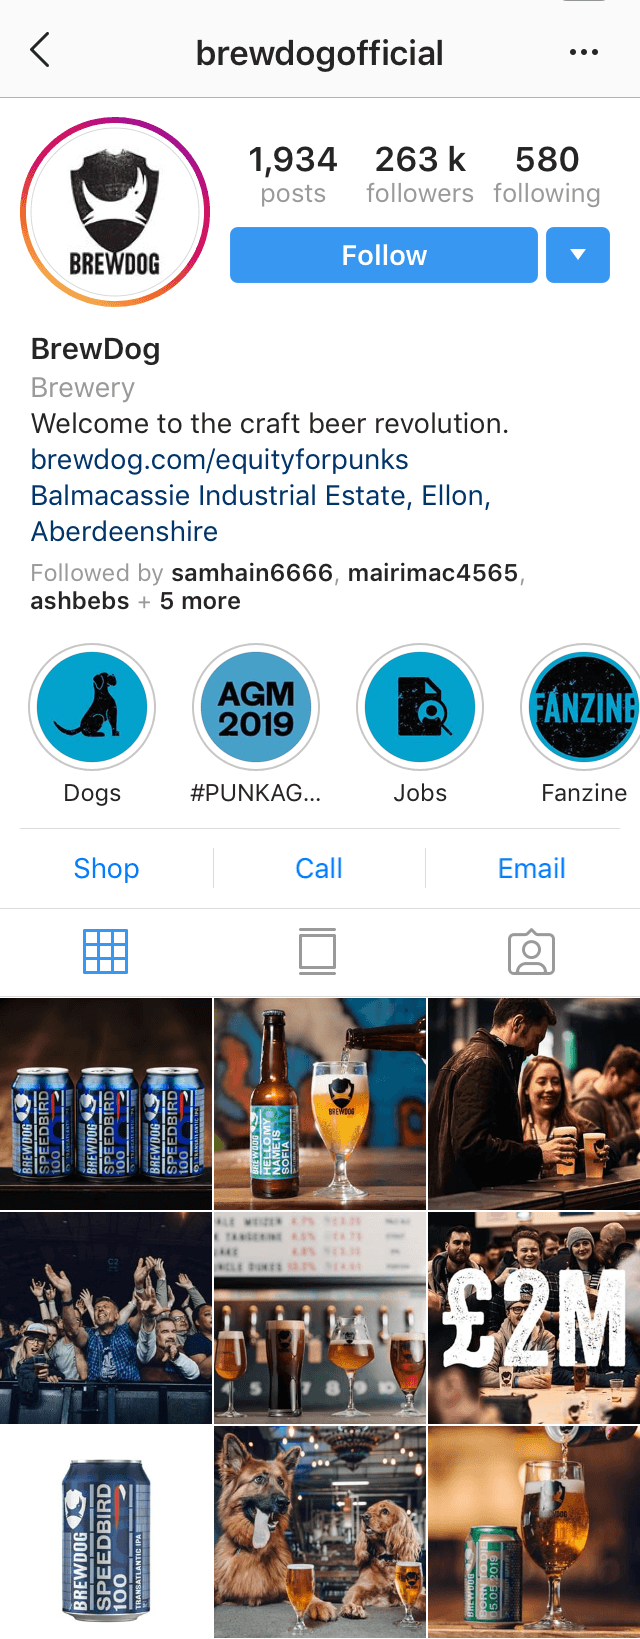 @brewdogofficial Instagram profile